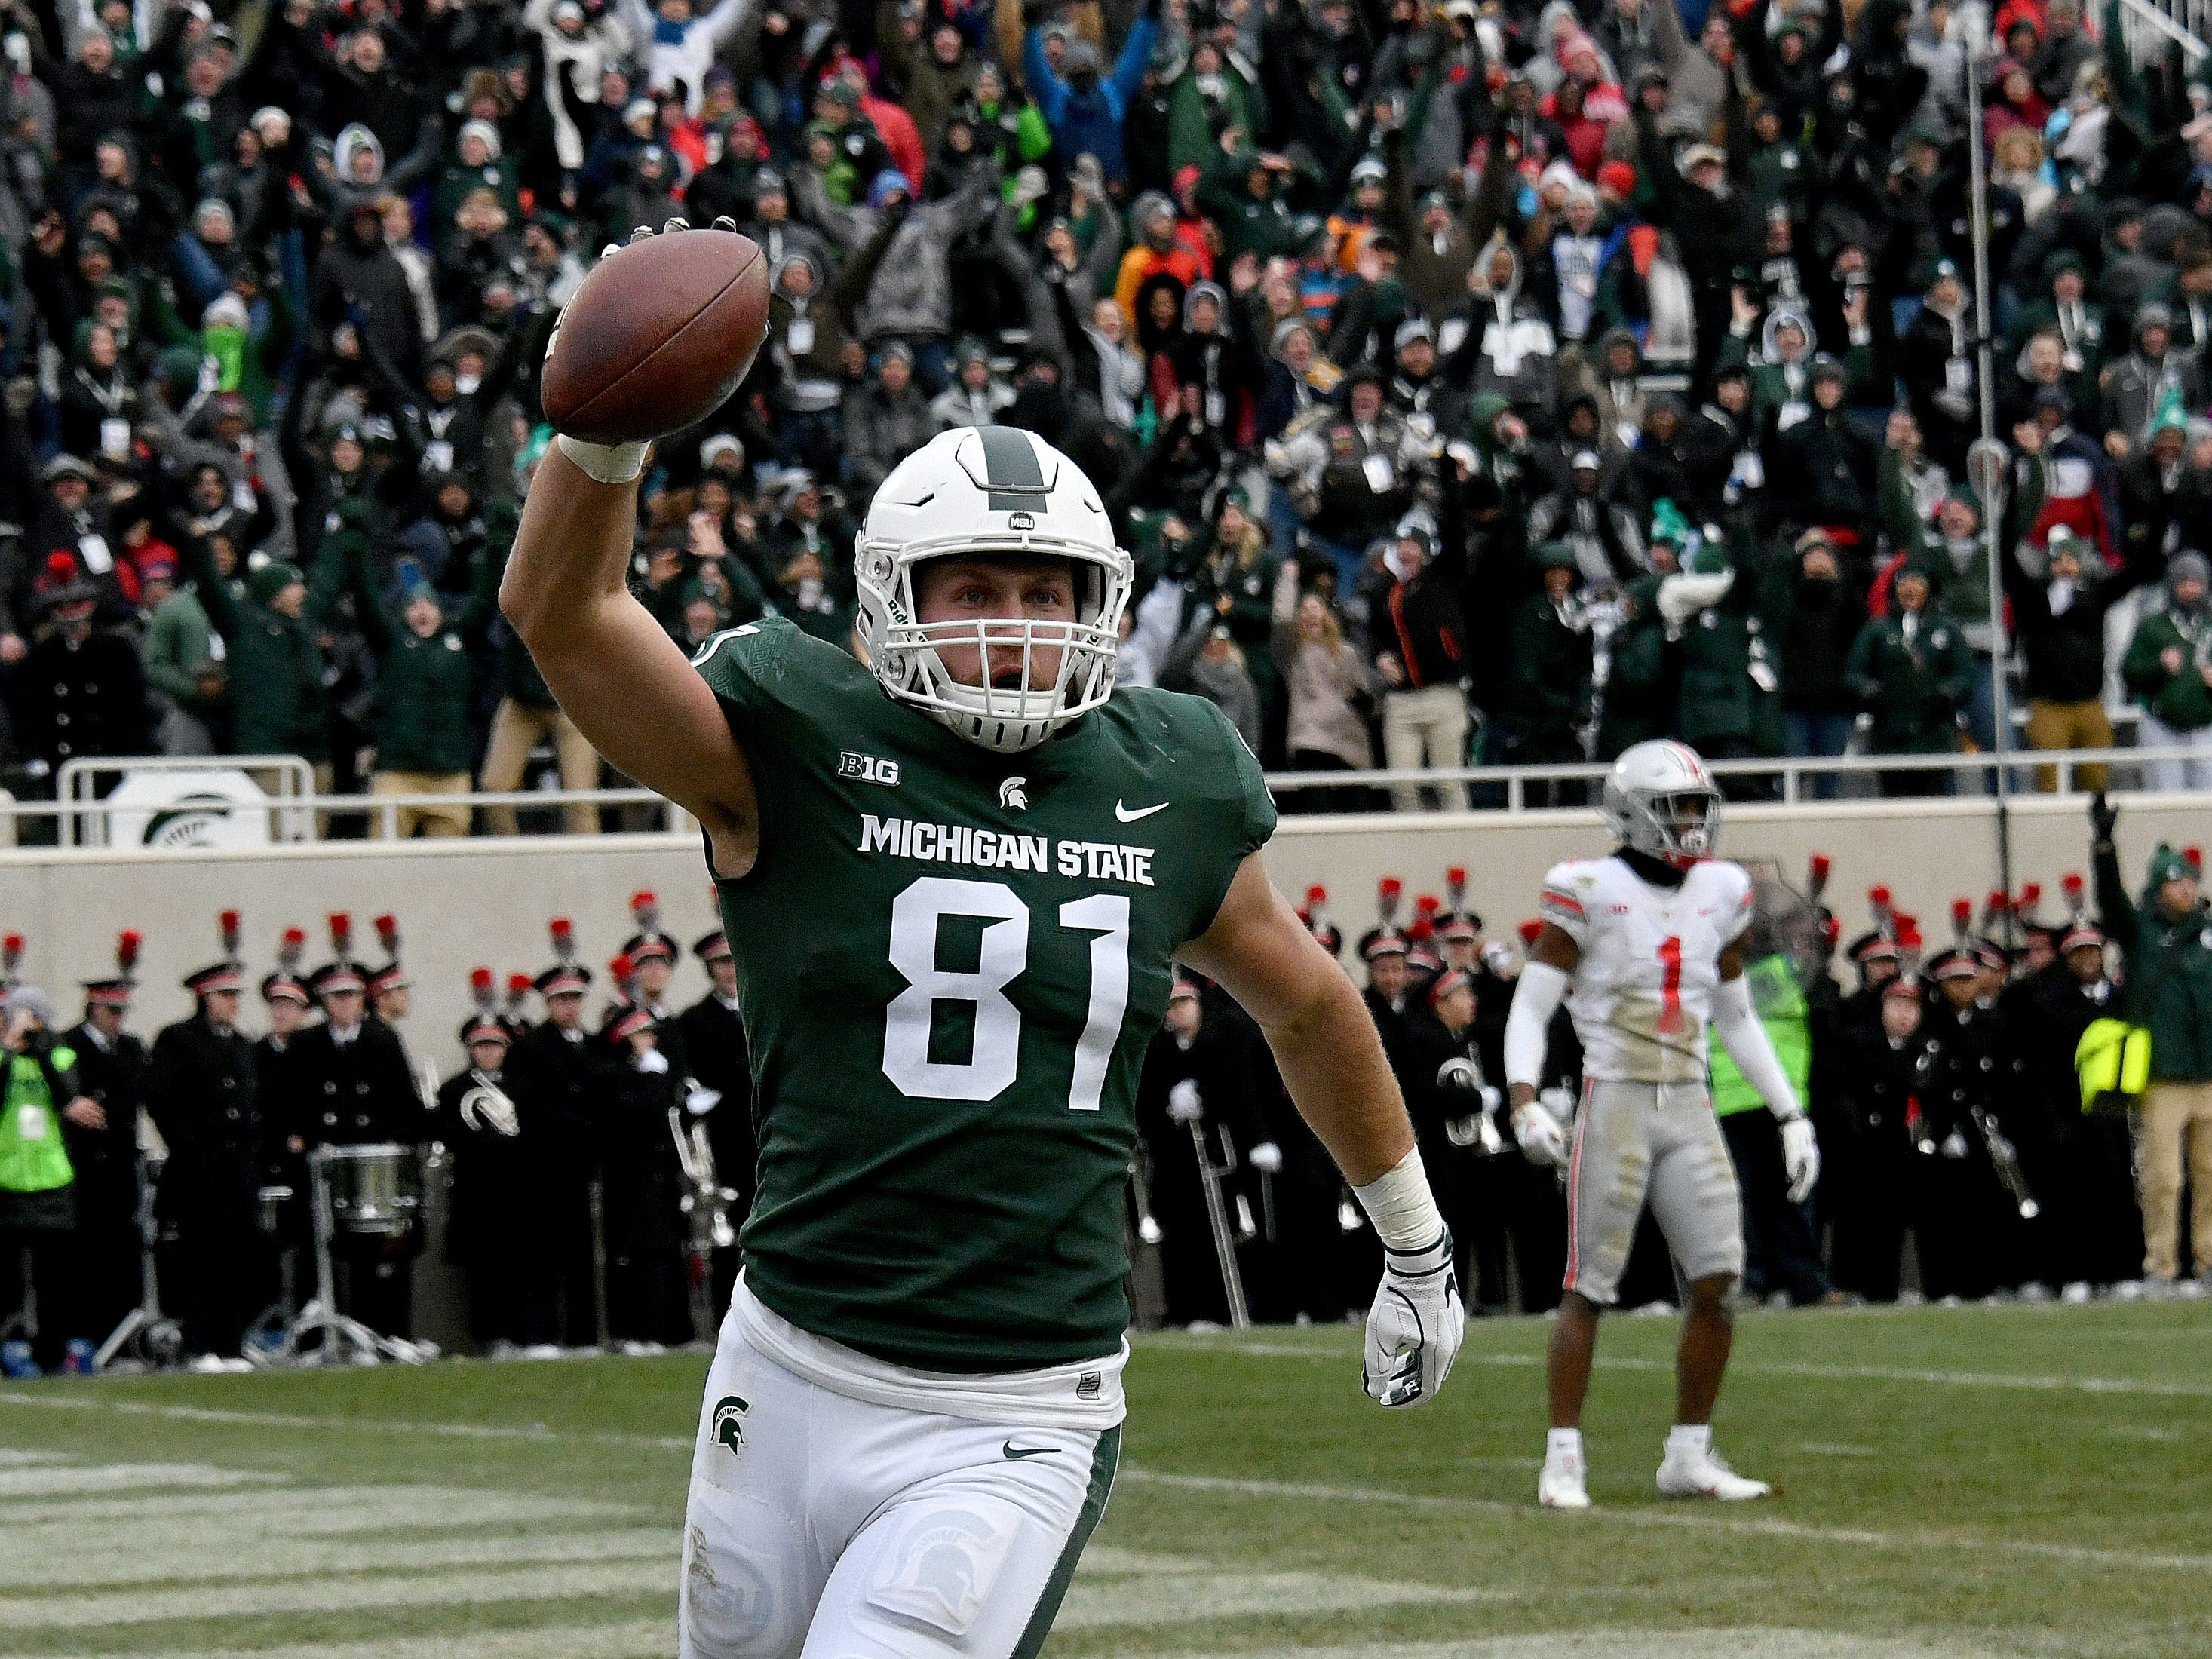 Matt Sokol celebrates after he catches the ball in the end zone in the third quarter in a play that would have put the Spartans in the lead, but the touchdown was negated by the referees .